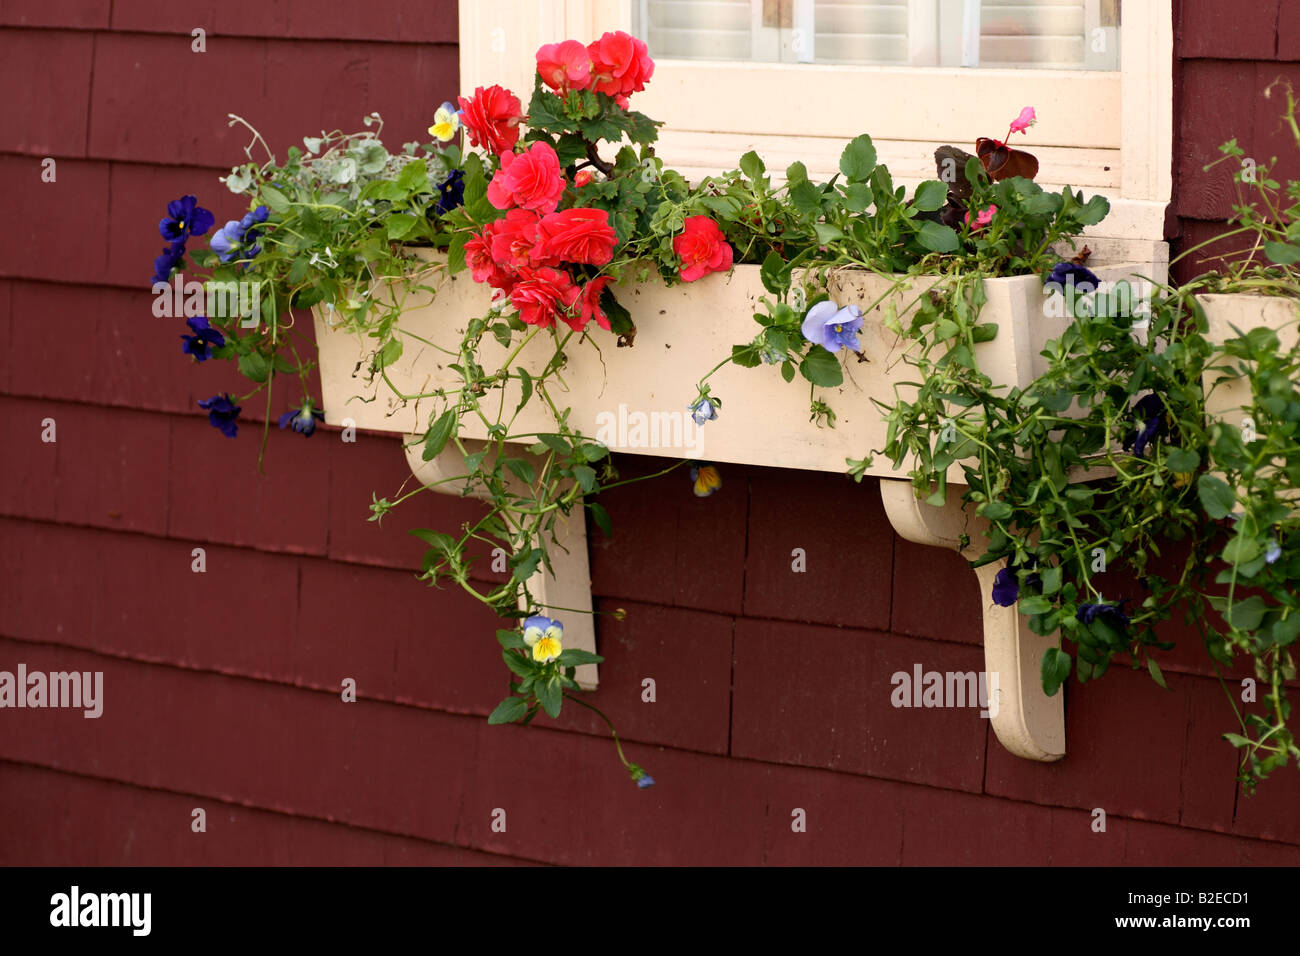 a flower box below a window outside of a house - Stock Image